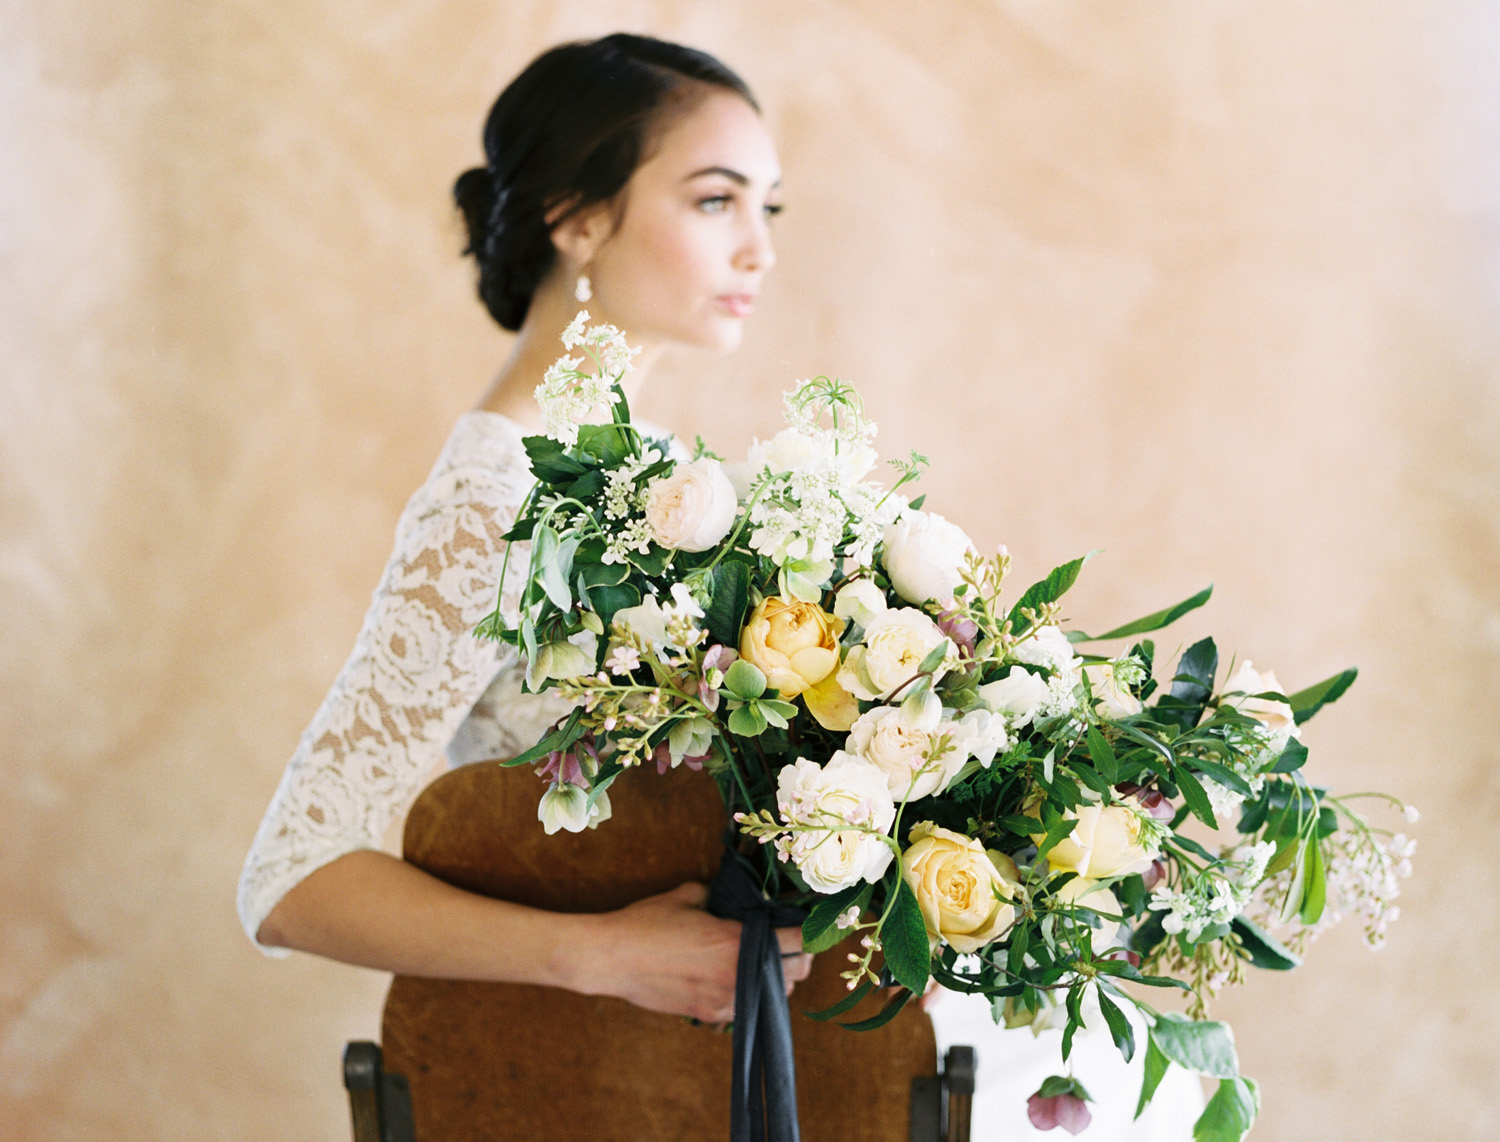 Organic stone crest wedding inspiration keestone events for Vintage wedding dresses fort worth